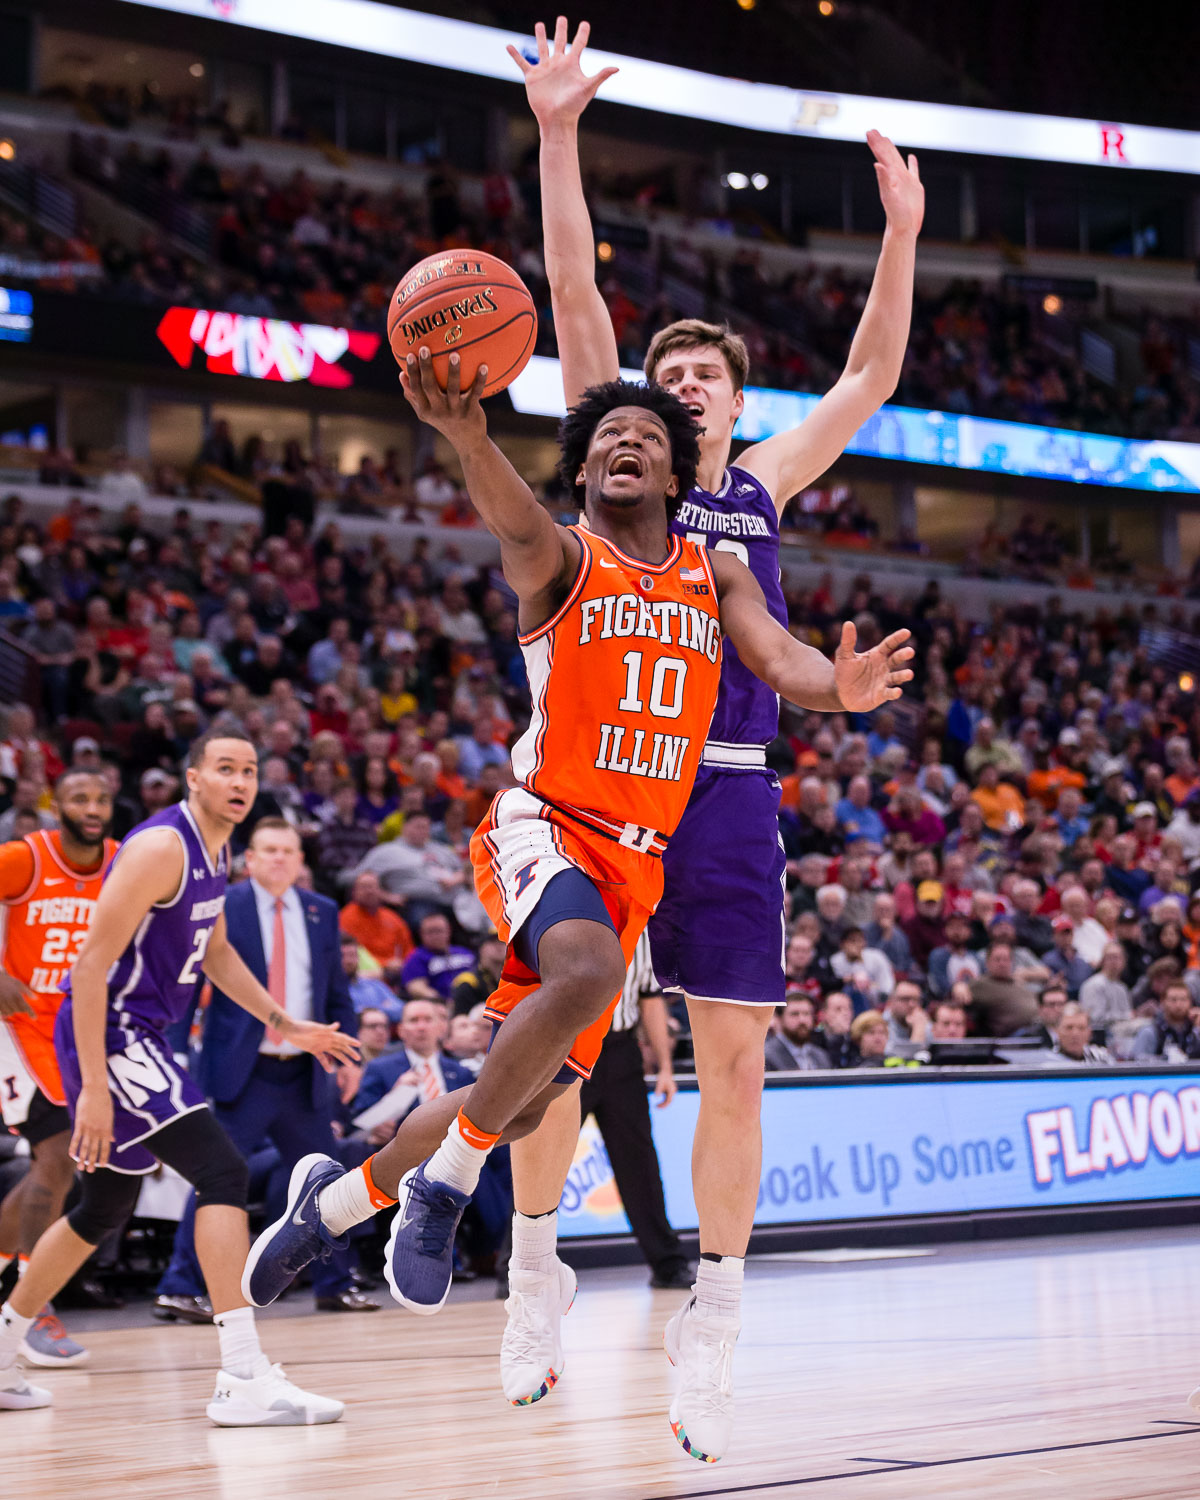 Illinois+guard+Andres+Feliz+goes+up+for+a+layup+during+the+game+against+Northwestern+in+the+first+round+of+the+Big+Ten+Tournament+at+the+United+Center+on+Wednesday.